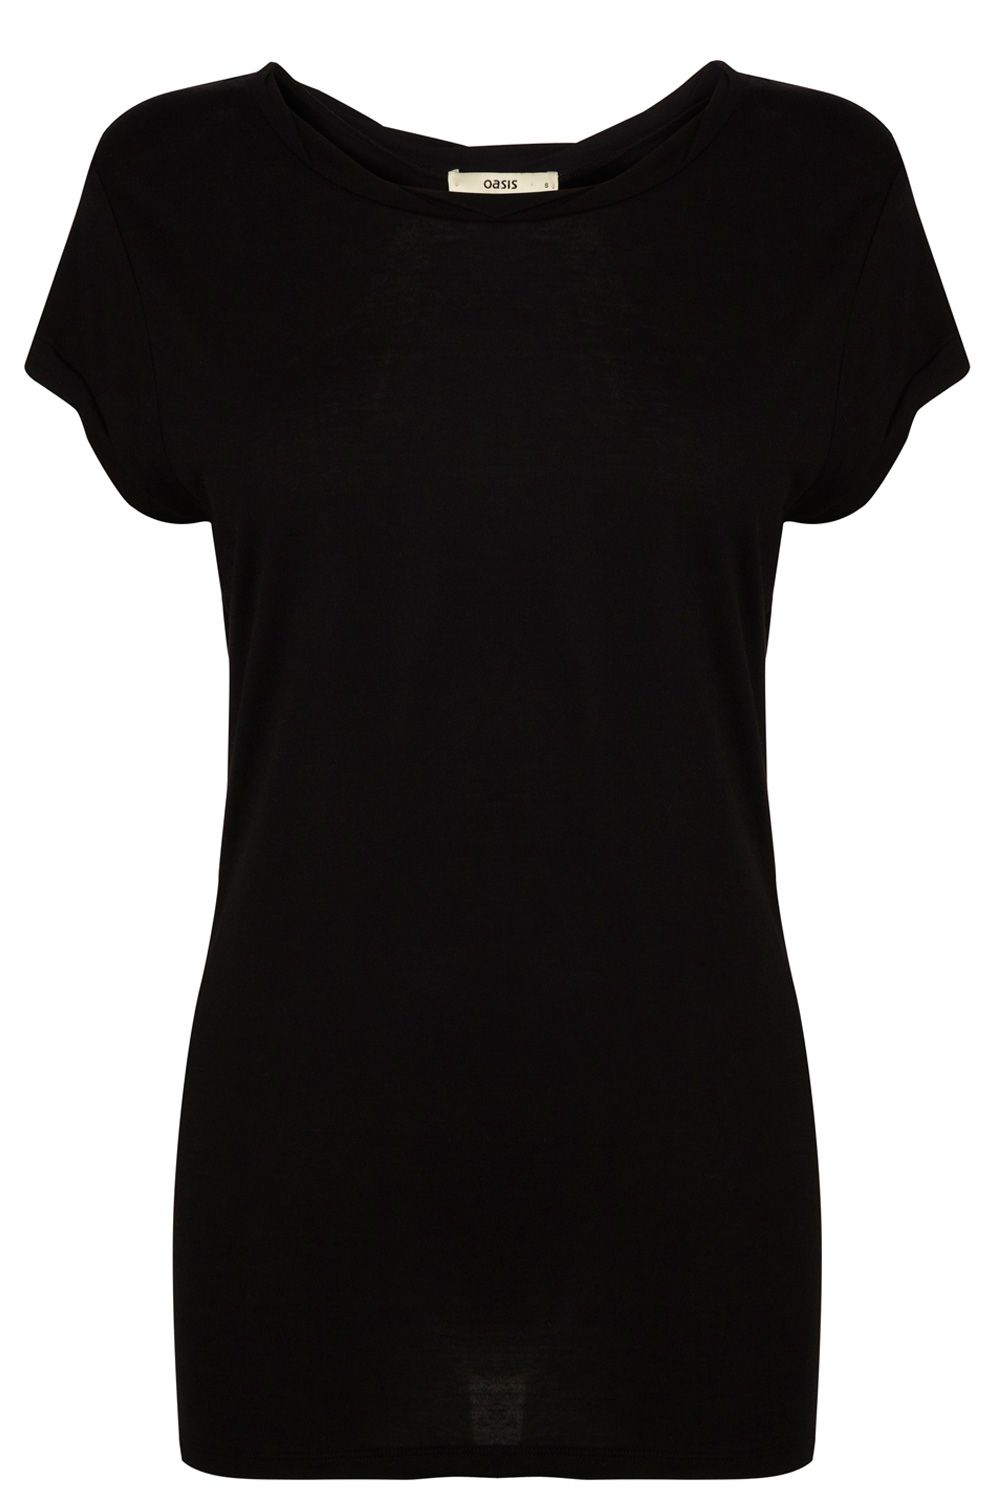 Basic twist neck tee